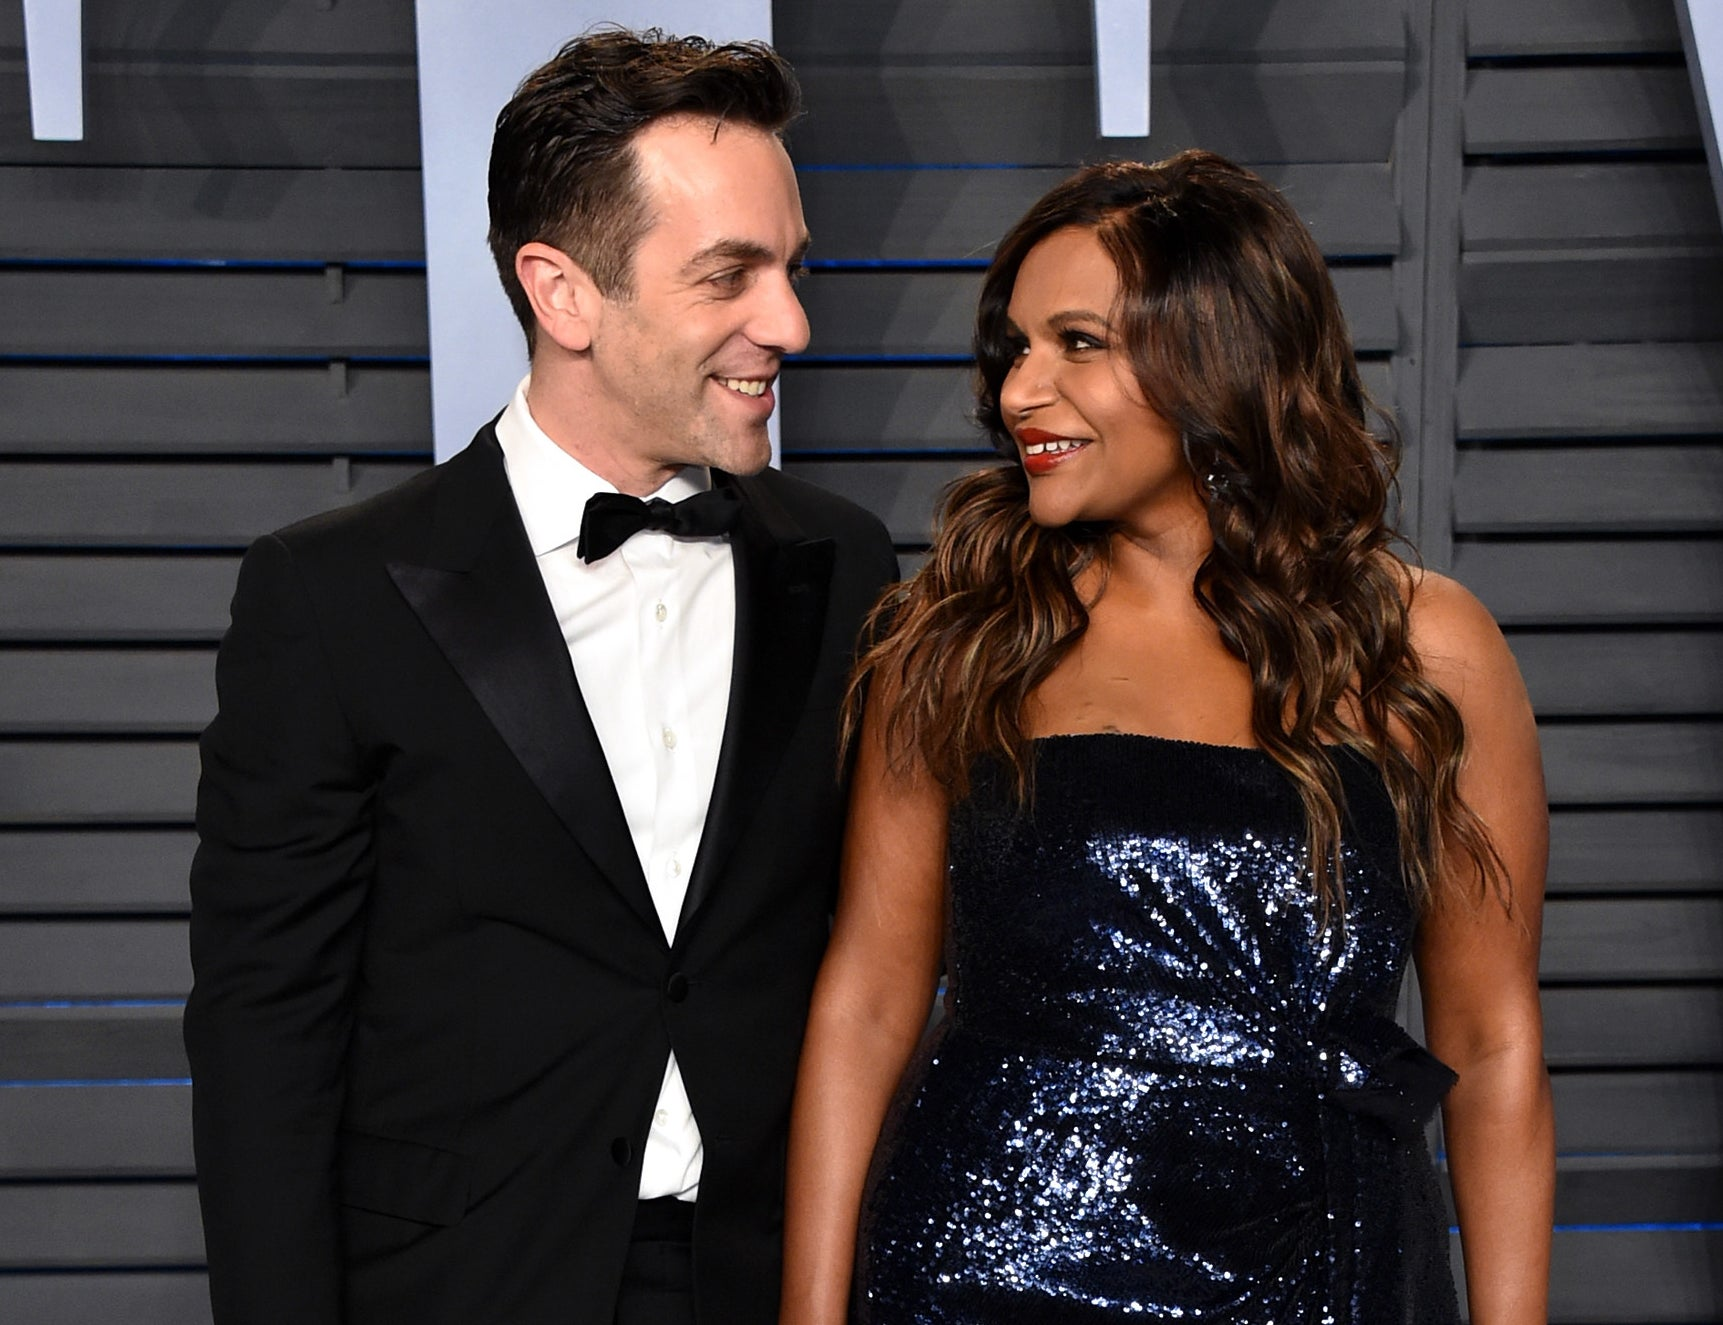 Mindy and B.J. look at each other and smile at an event